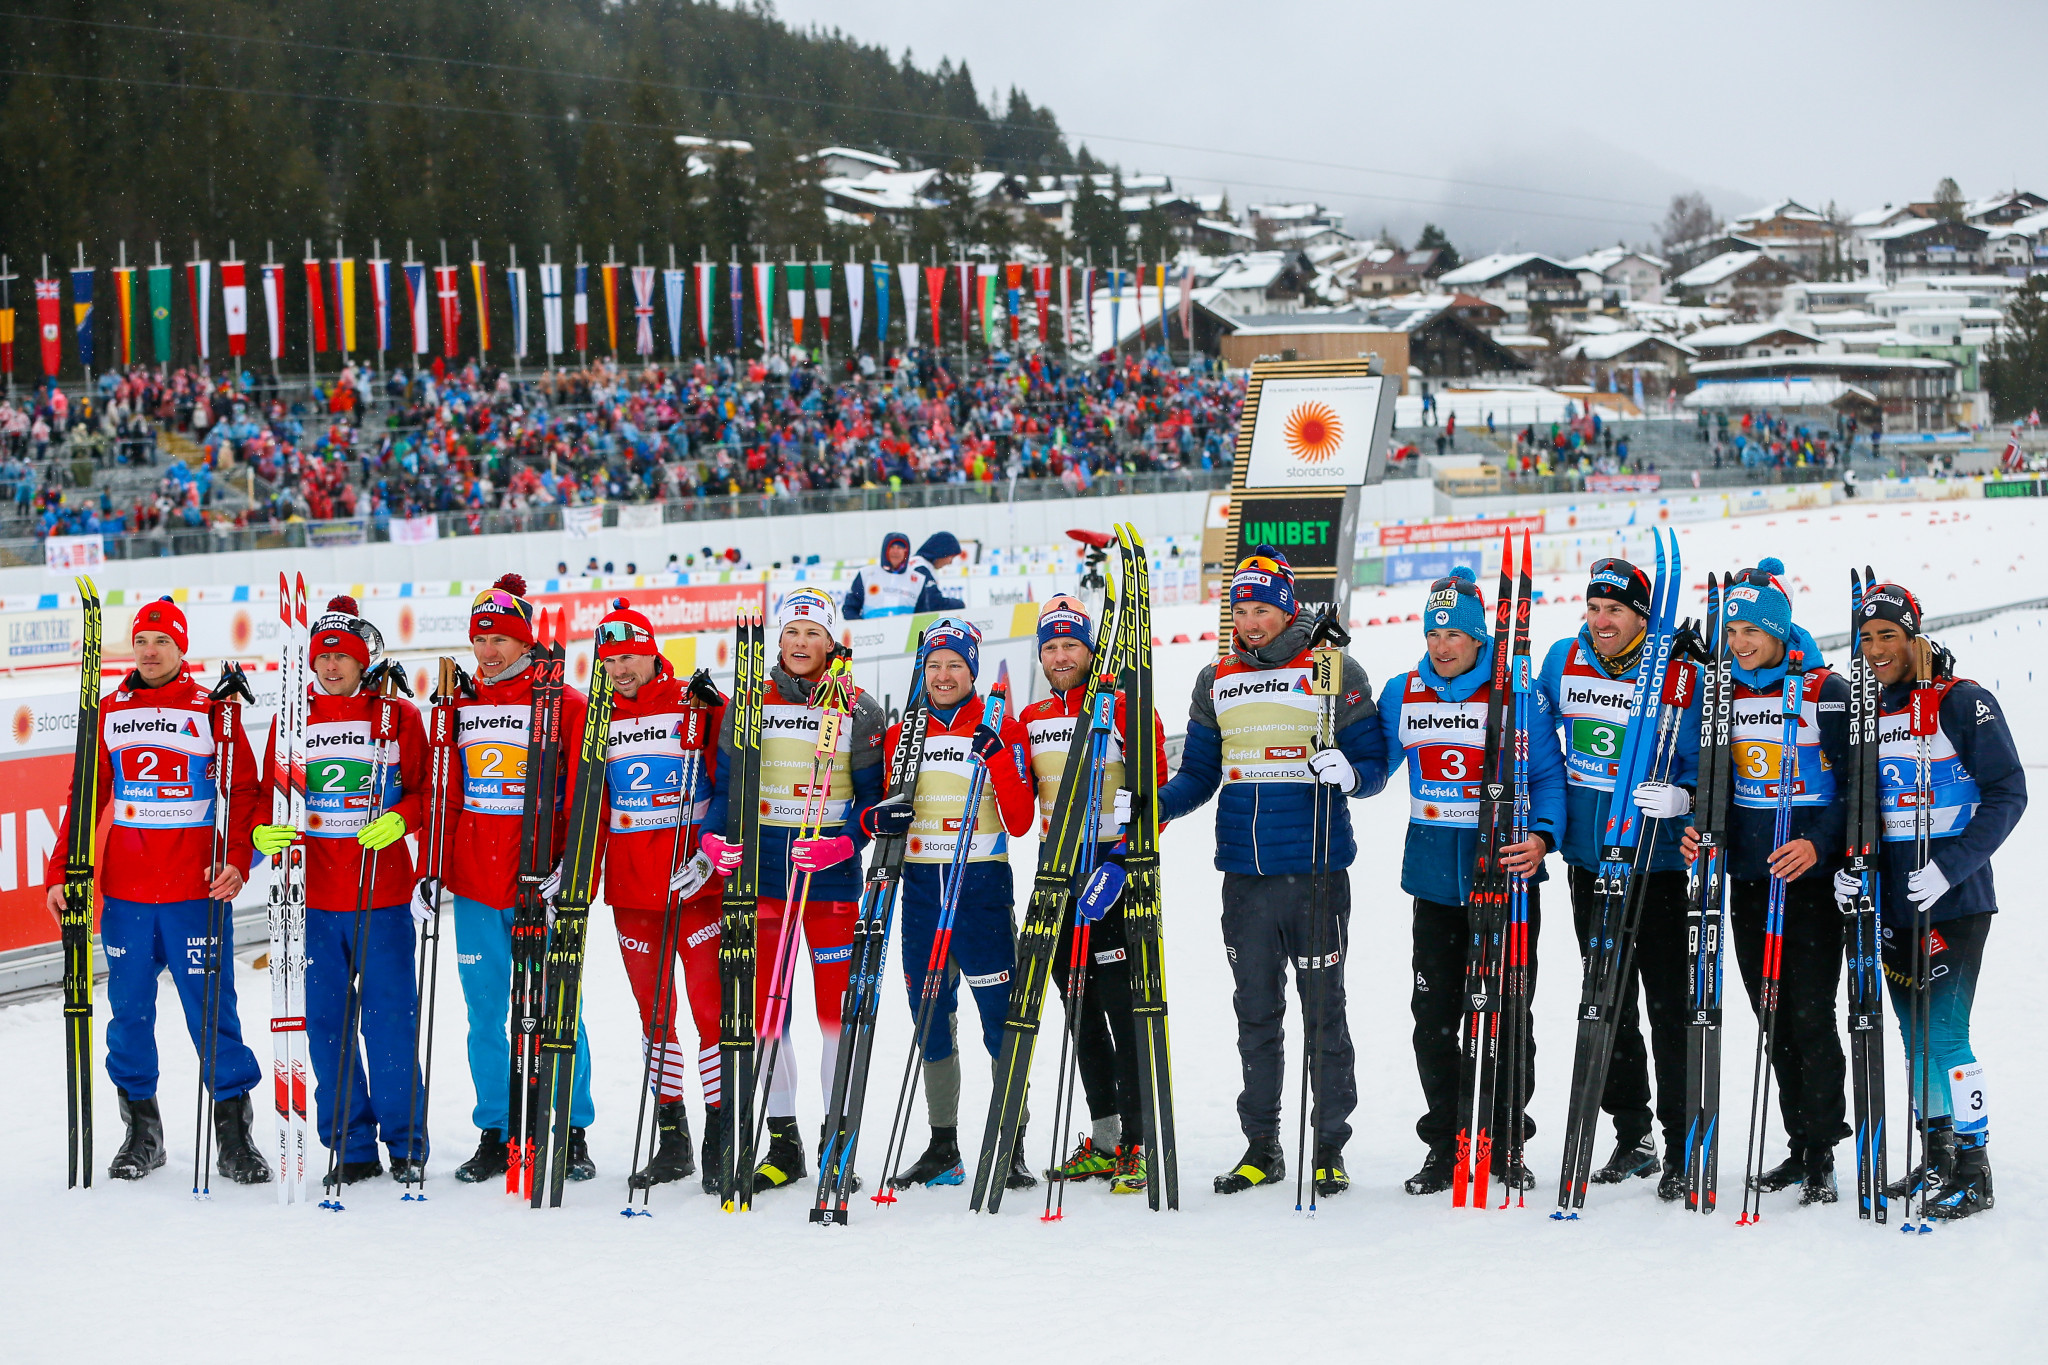 Norway secured their 10th straight cross-country 4x10km men's relay title ©Getty Images